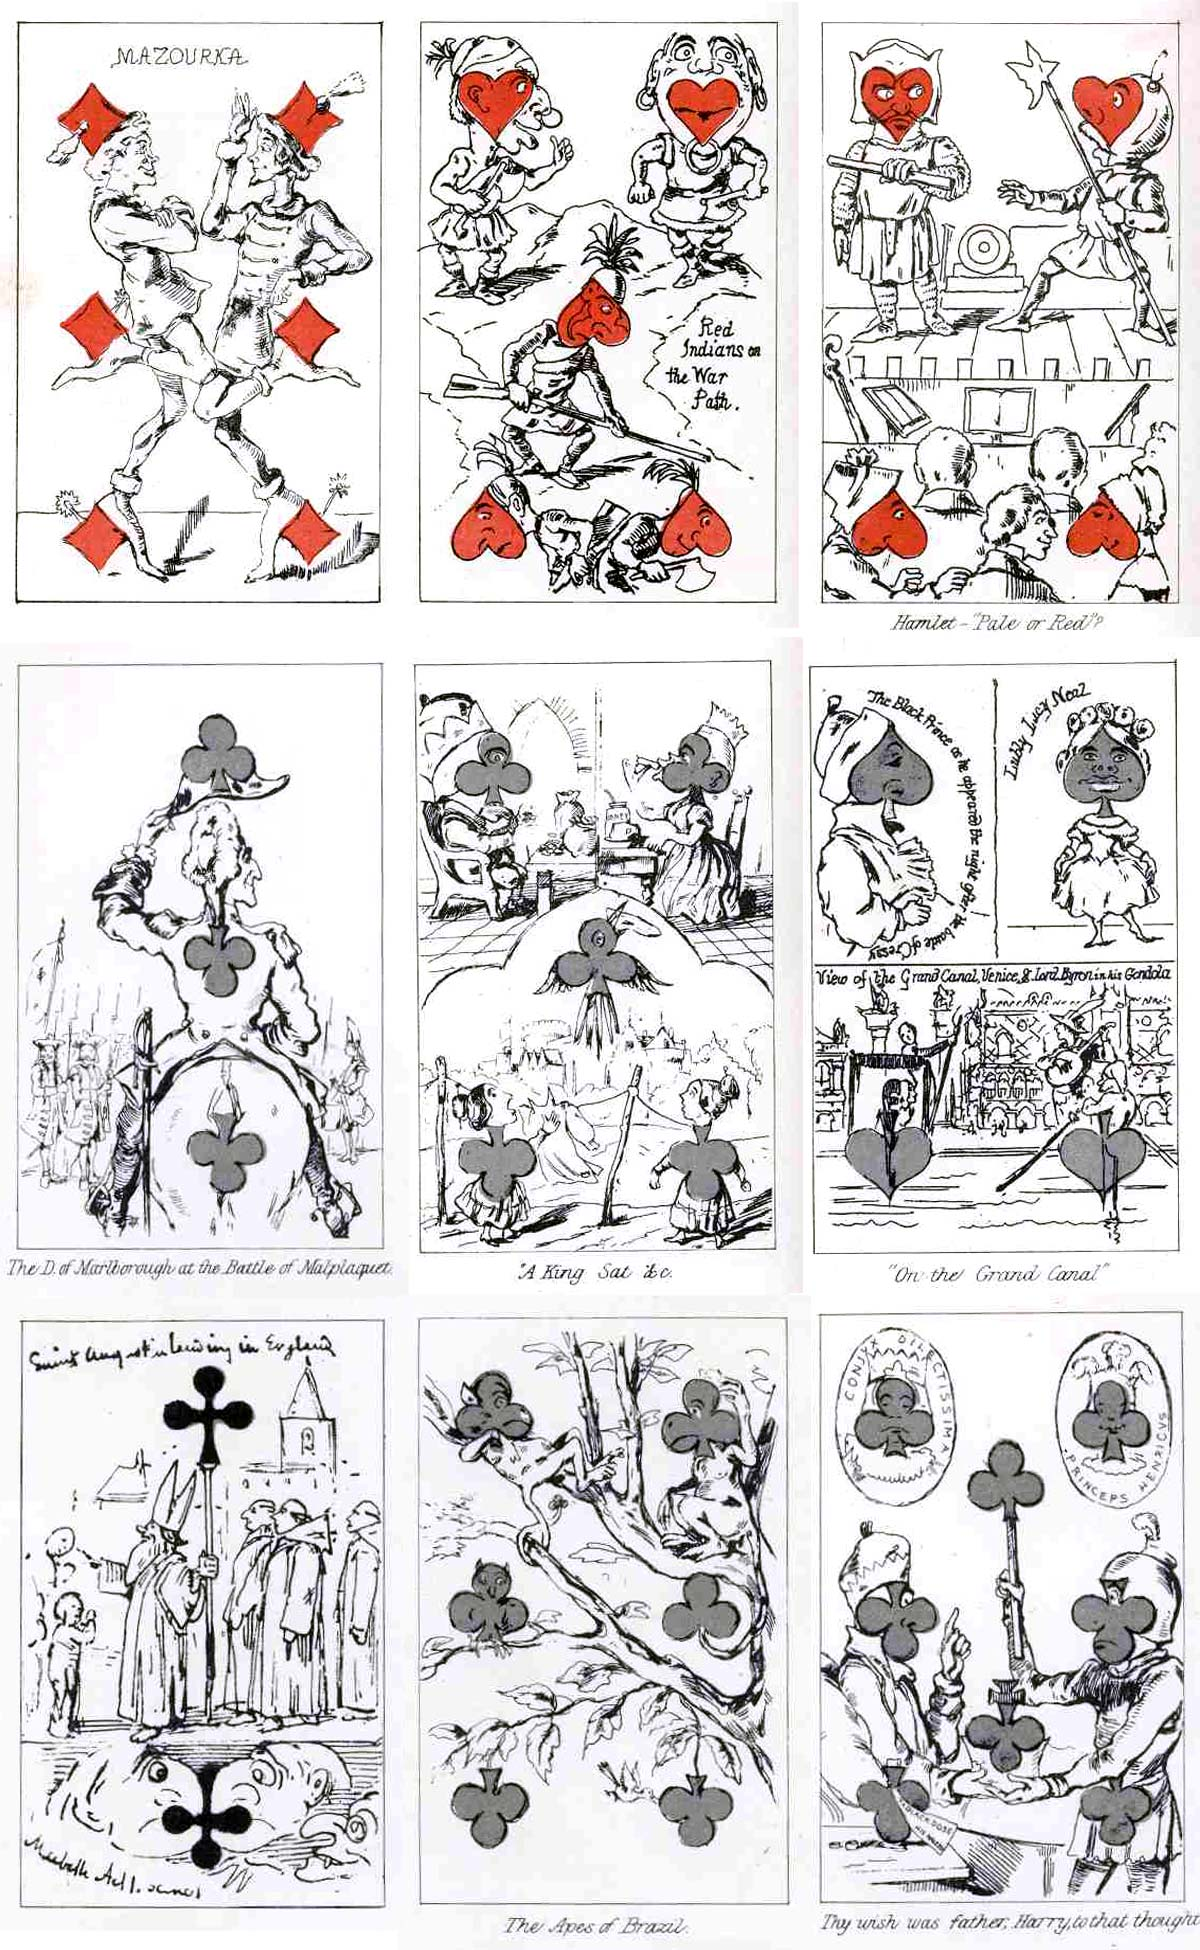 Transformation playing cards by William Makepeace Thackeray, 1876